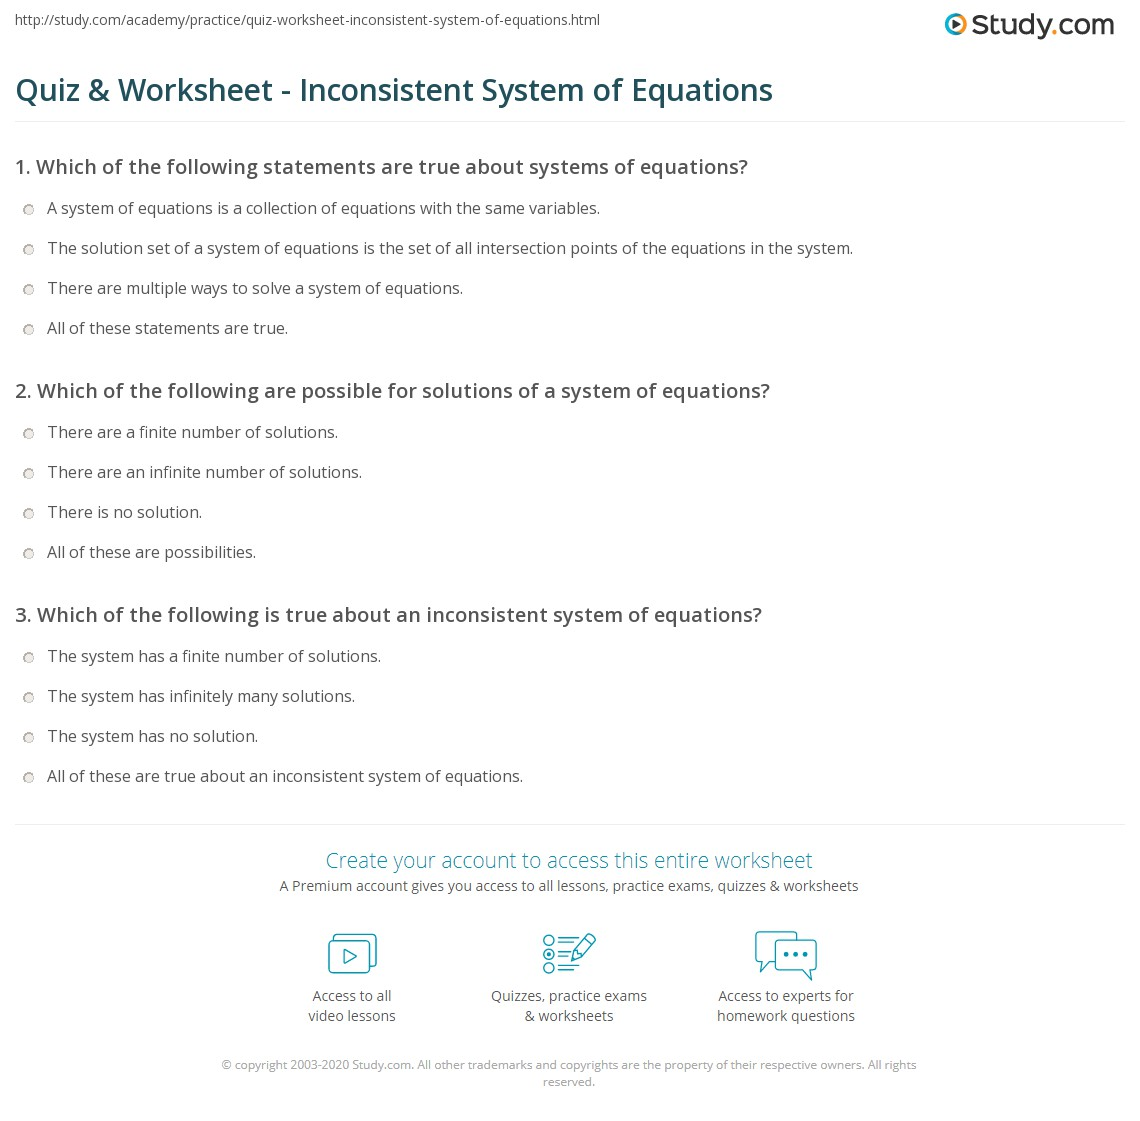 quiz worksheet inconsistent system of equations. Black Bedroom Furniture Sets. Home Design Ideas